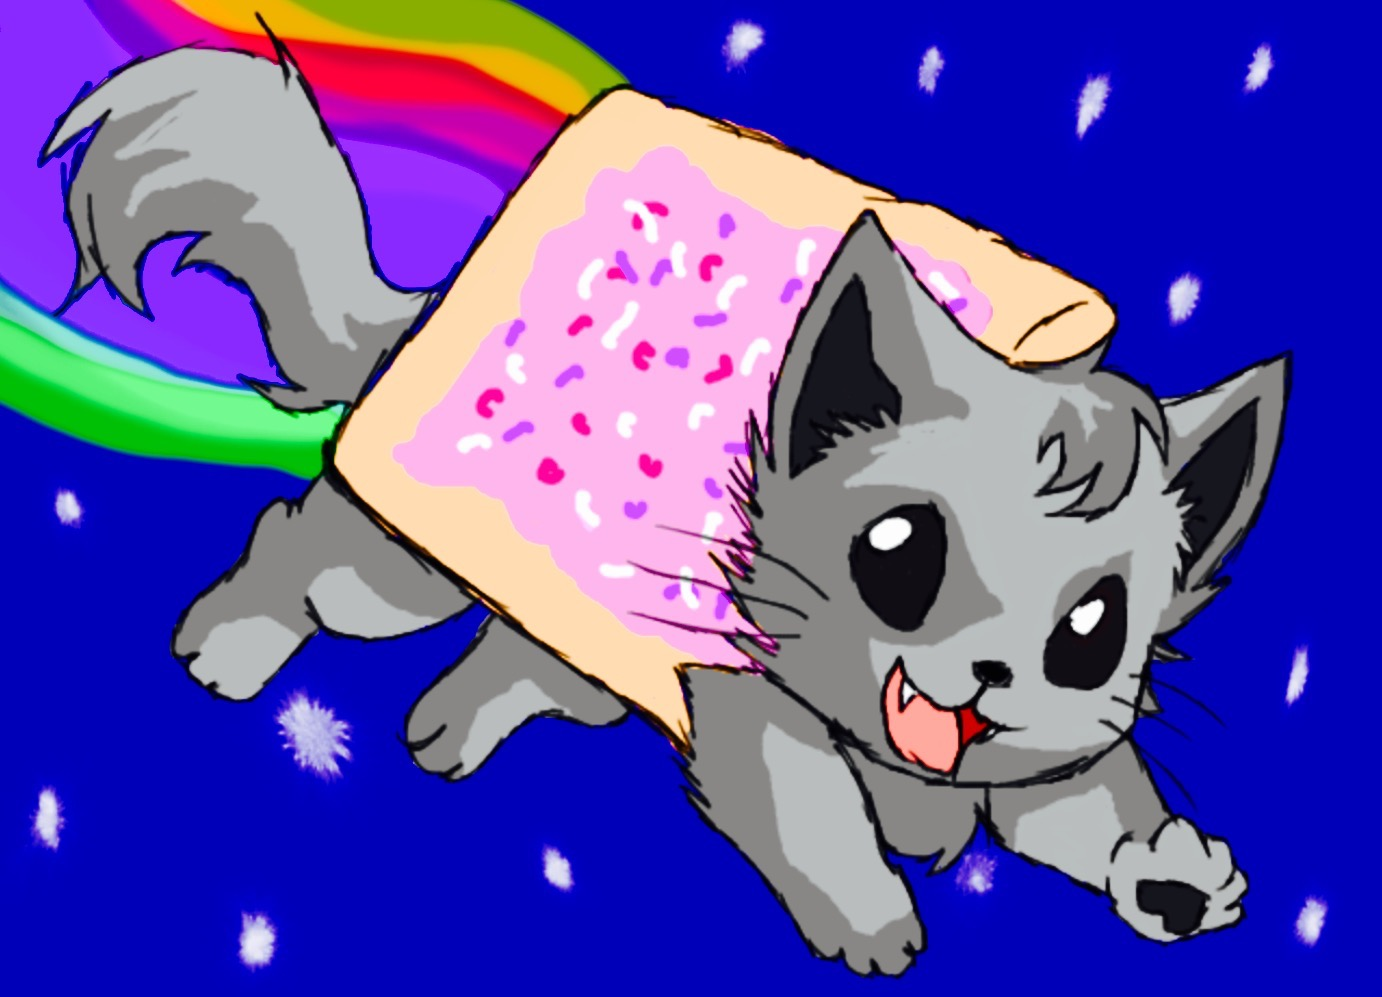 stampylongnose images funkywizard hd wallpaper and background photos